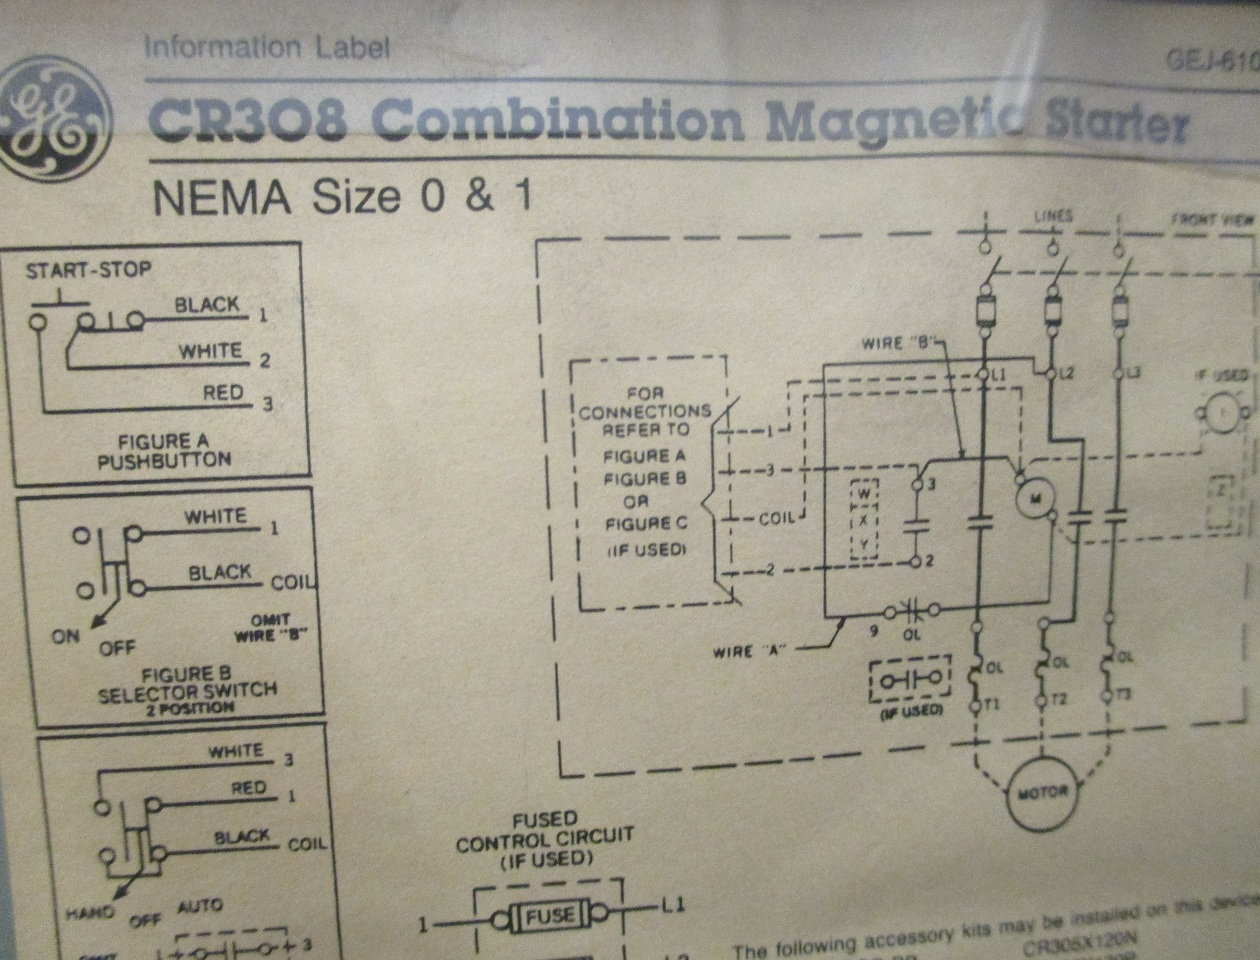 dis3585 ge combination magnetic starter cr308 600v max complete enclosure 300 line control 3?resize\=665%2C507 ge cr 308 motor starter wiring diagram wiring diagrams  at readyjetset.co